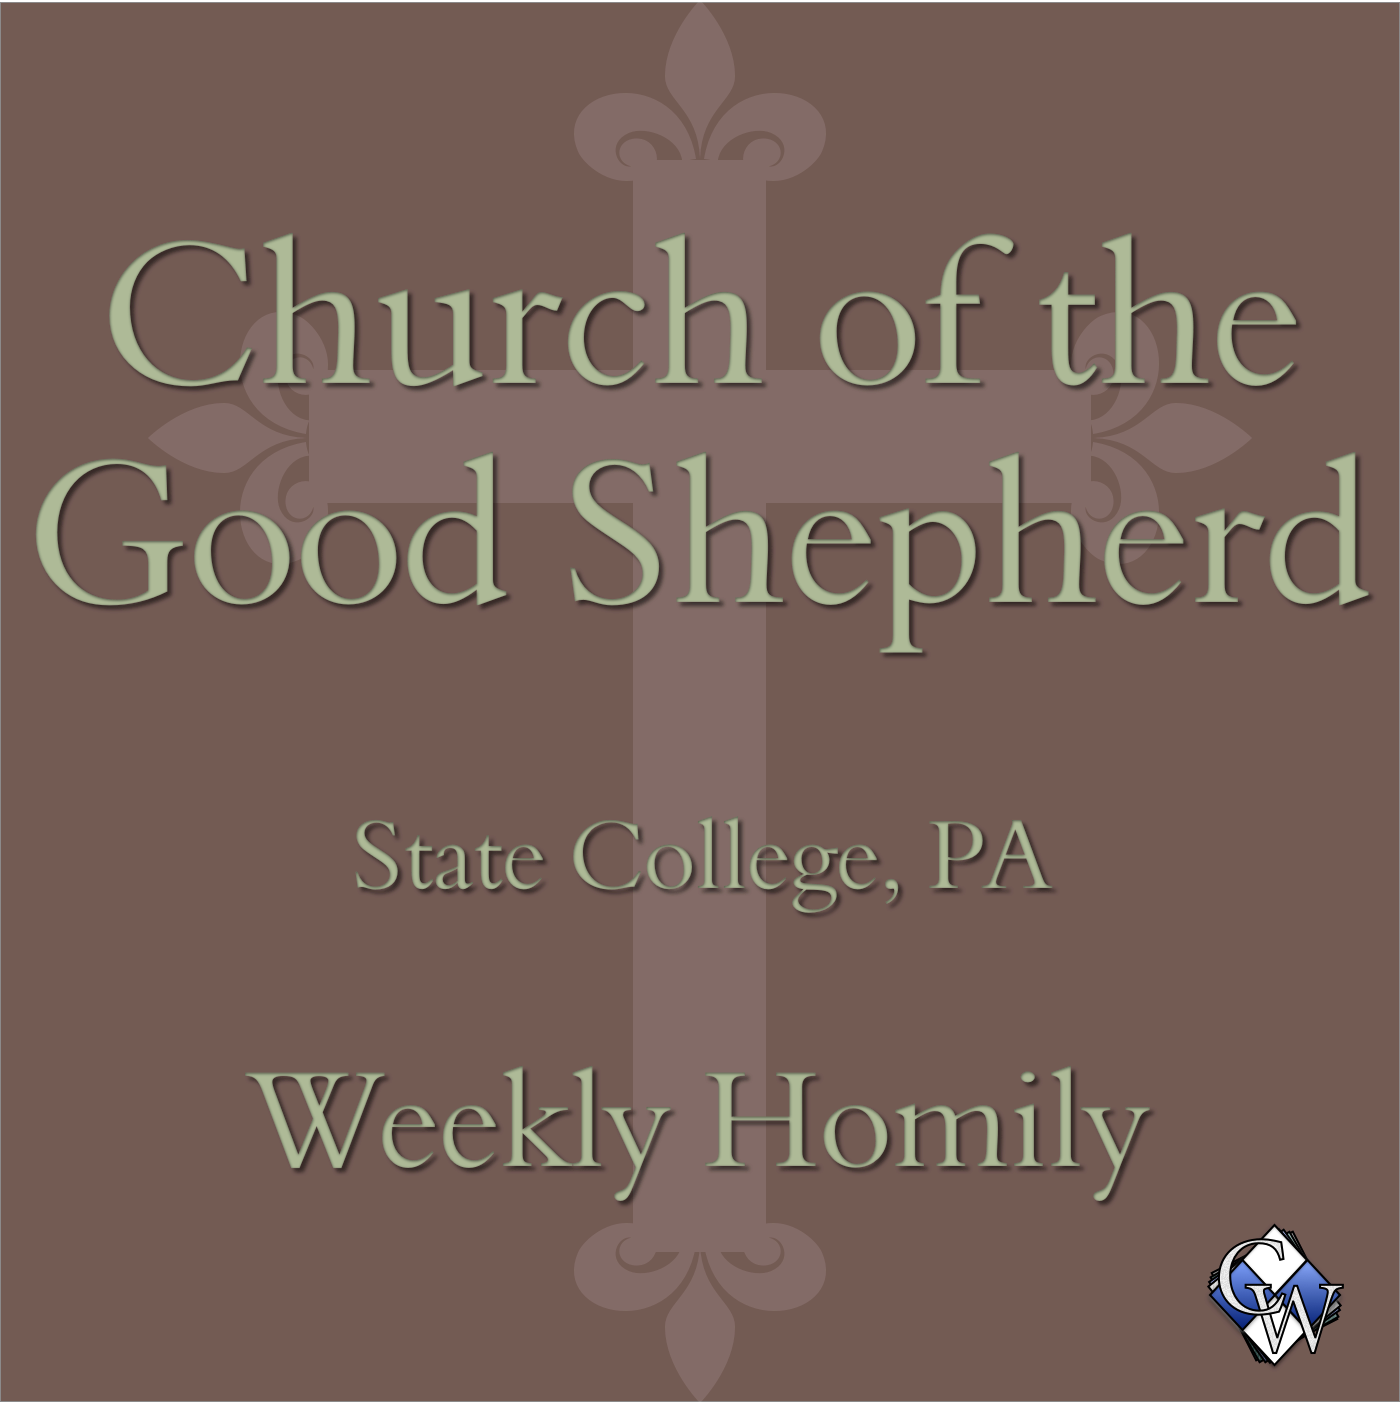 Church of the Good Shepherd Weekly Homily